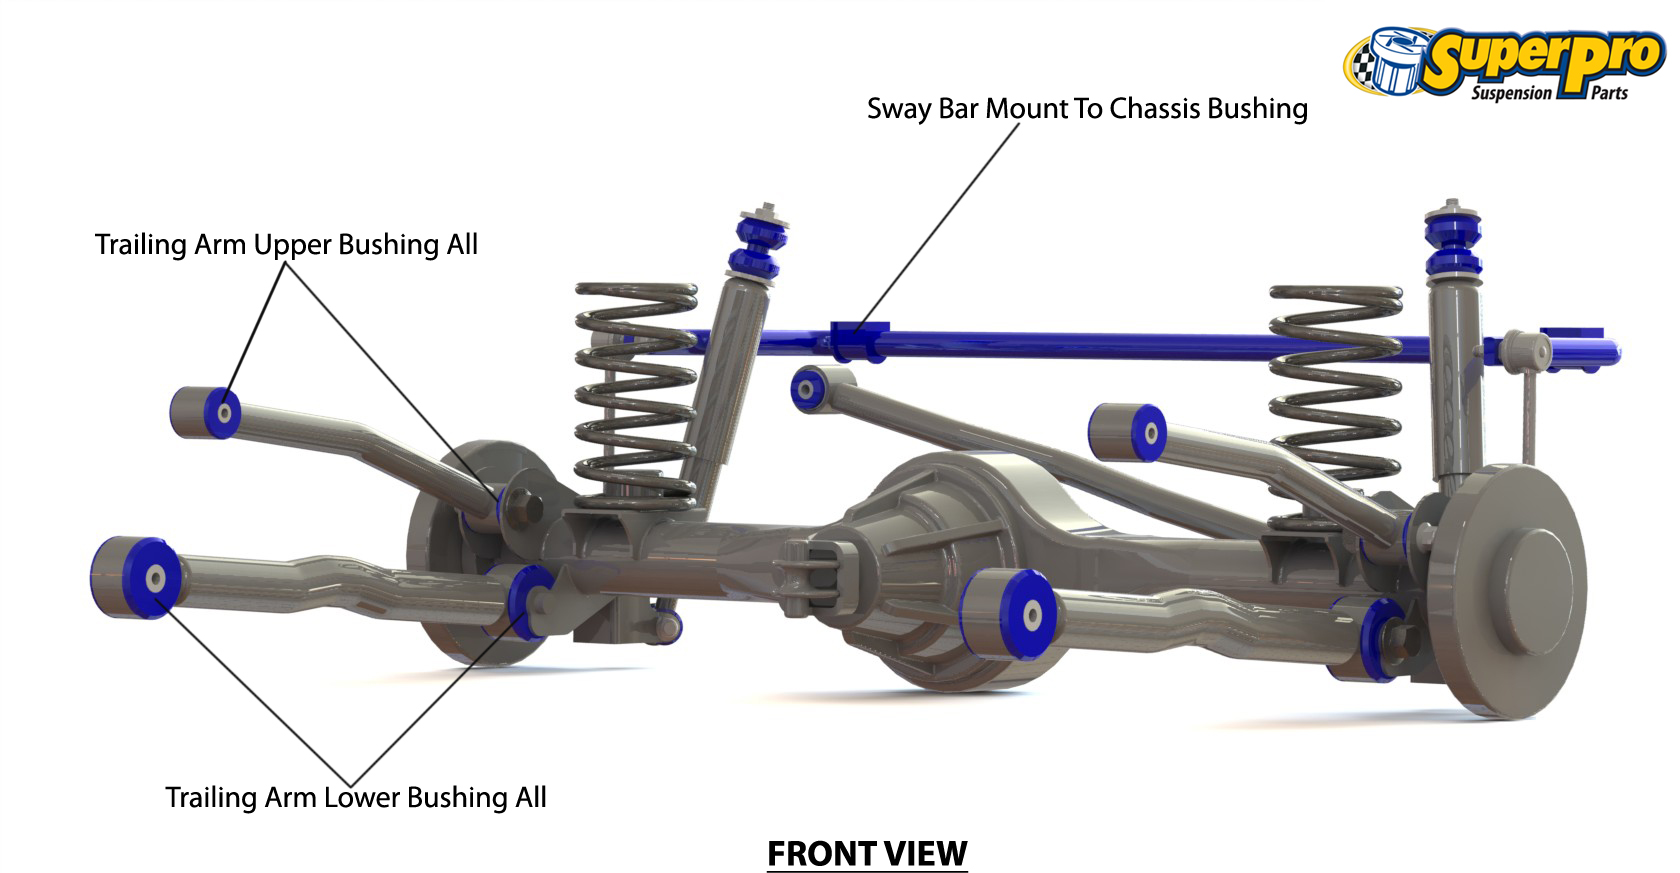 hight resolution of 2006 suzuki xl7 engine diagram images gallery superpro suspension parts and poly bushings for suzuki